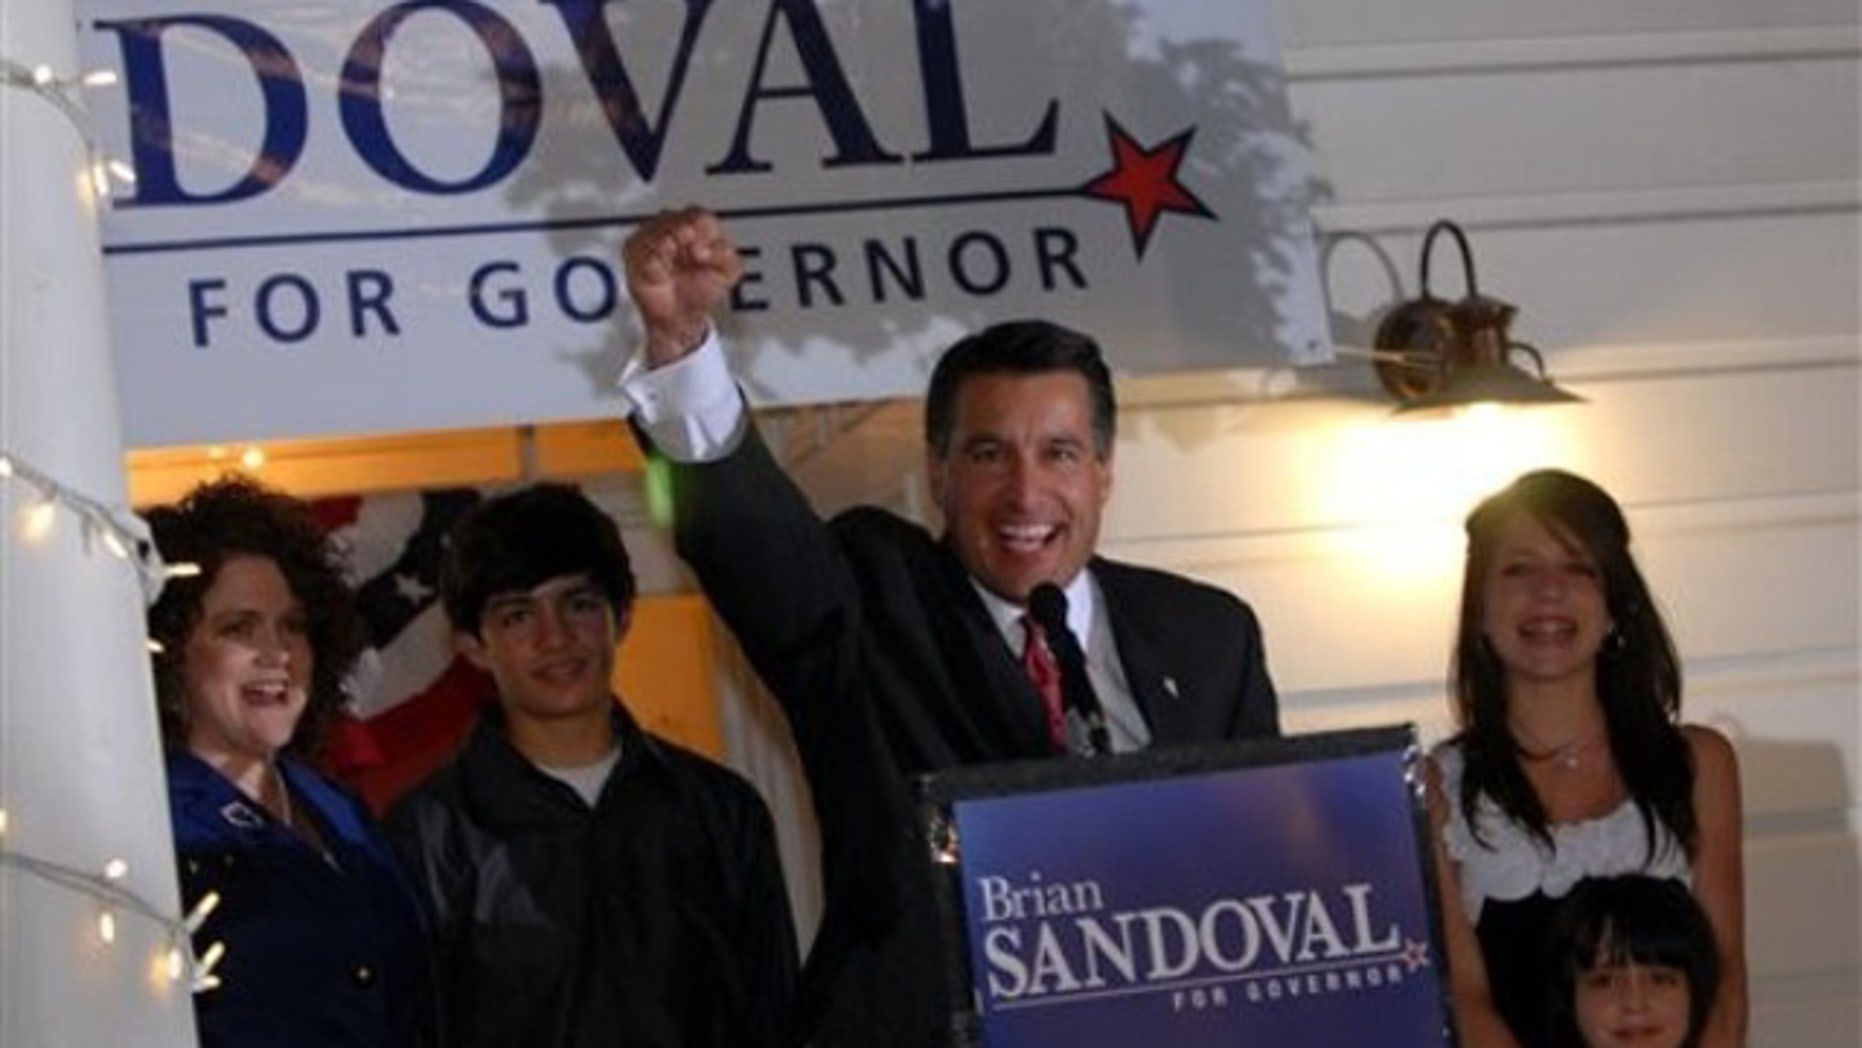 Nevada gubernatorial candidate Brian Sandoval celebrates his victory over incumbent Gov. Jim Gibbons in the GOP primary at the Garden Shop Nursery in Reno, Nev., June 8. (AP Photo)